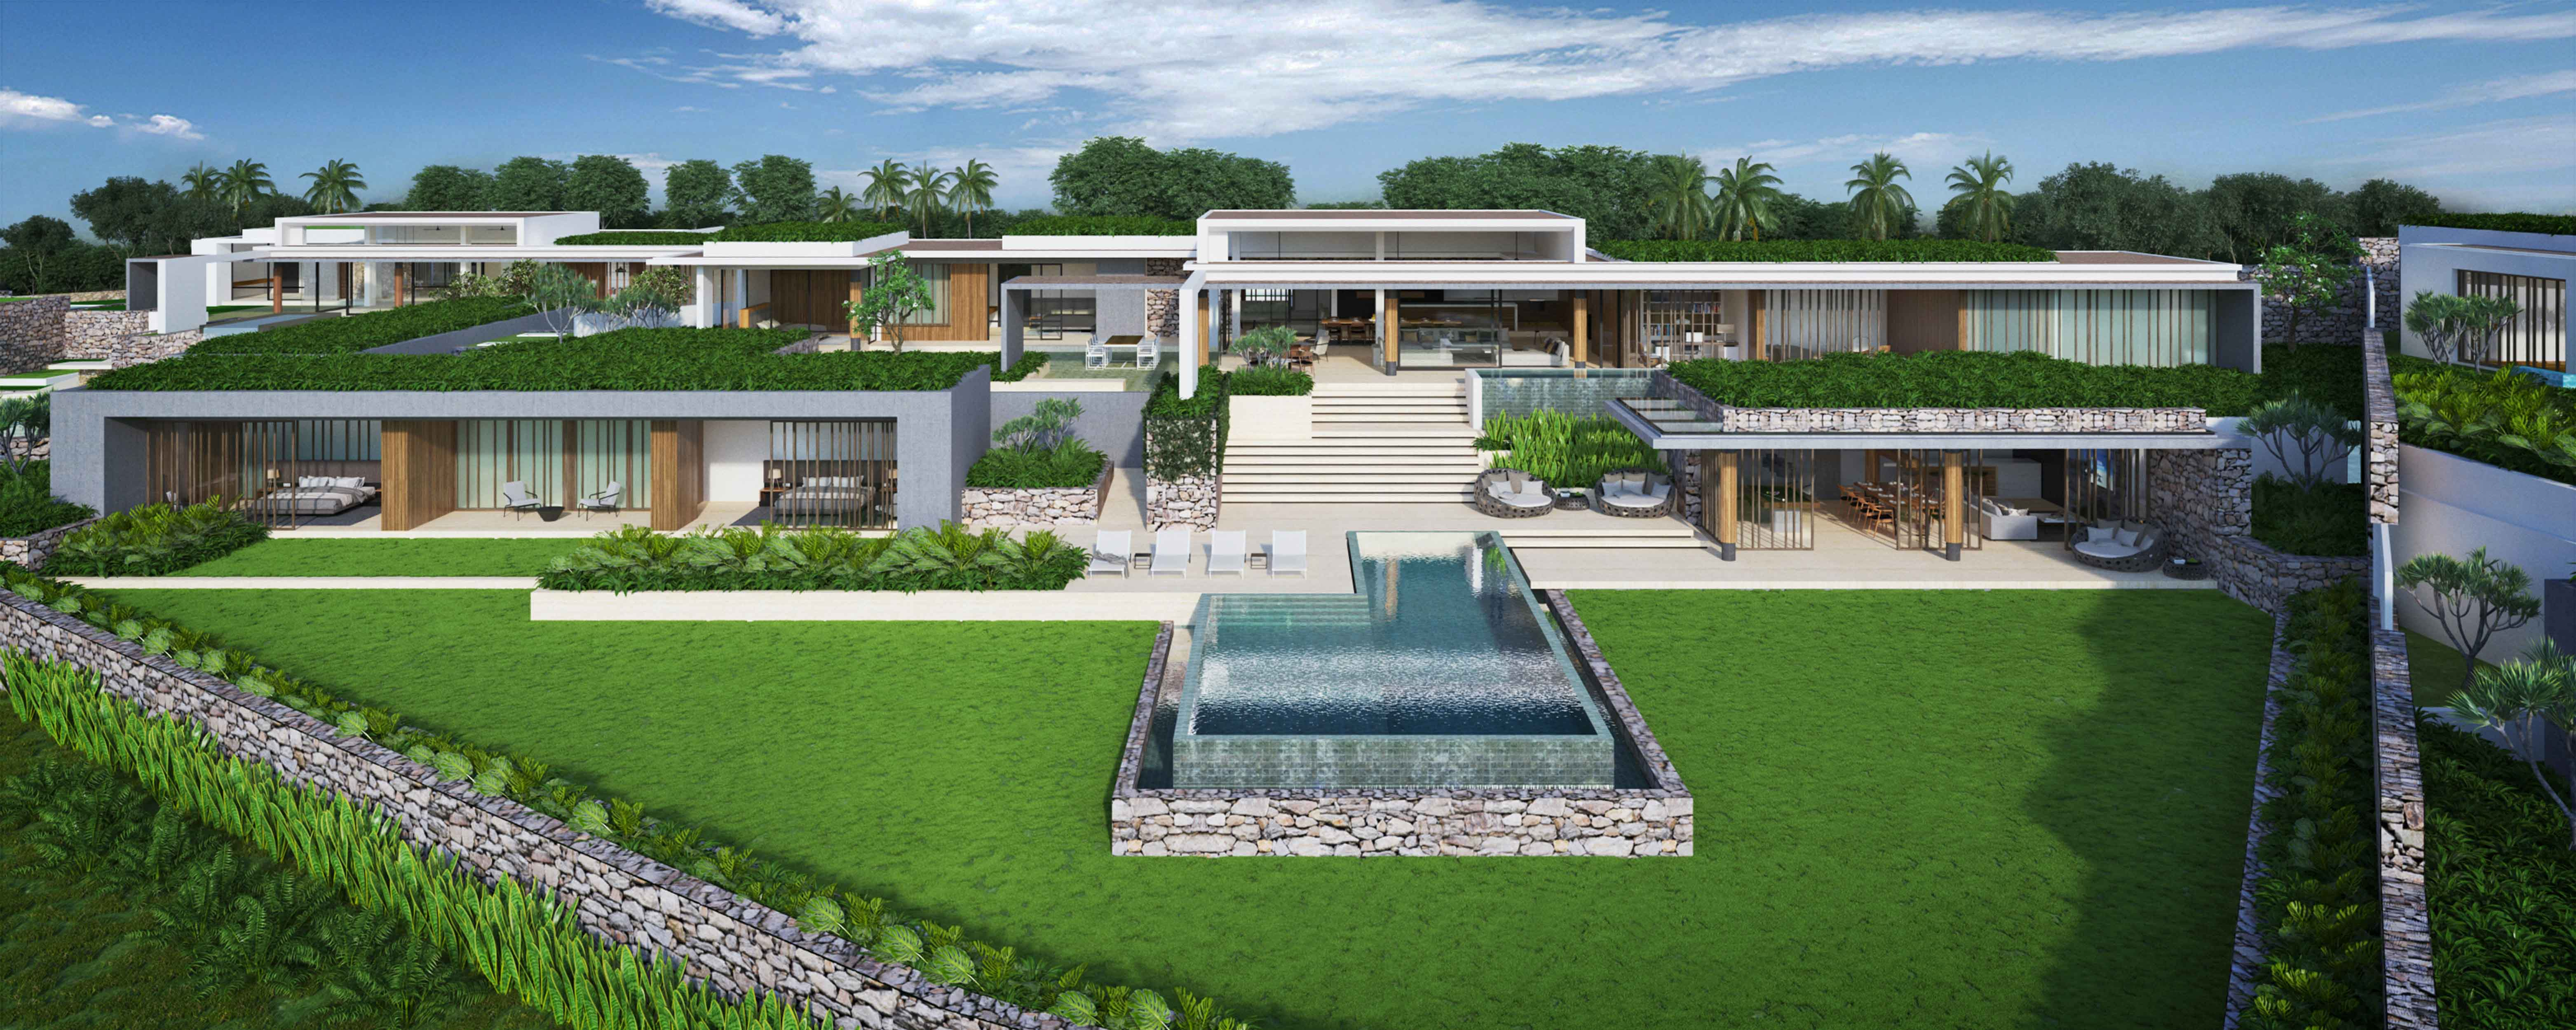 Projects Photo/Sunplay Lifestyle Bangsaray Thailand/sunplay-lifestyle-villa-c14-view-01